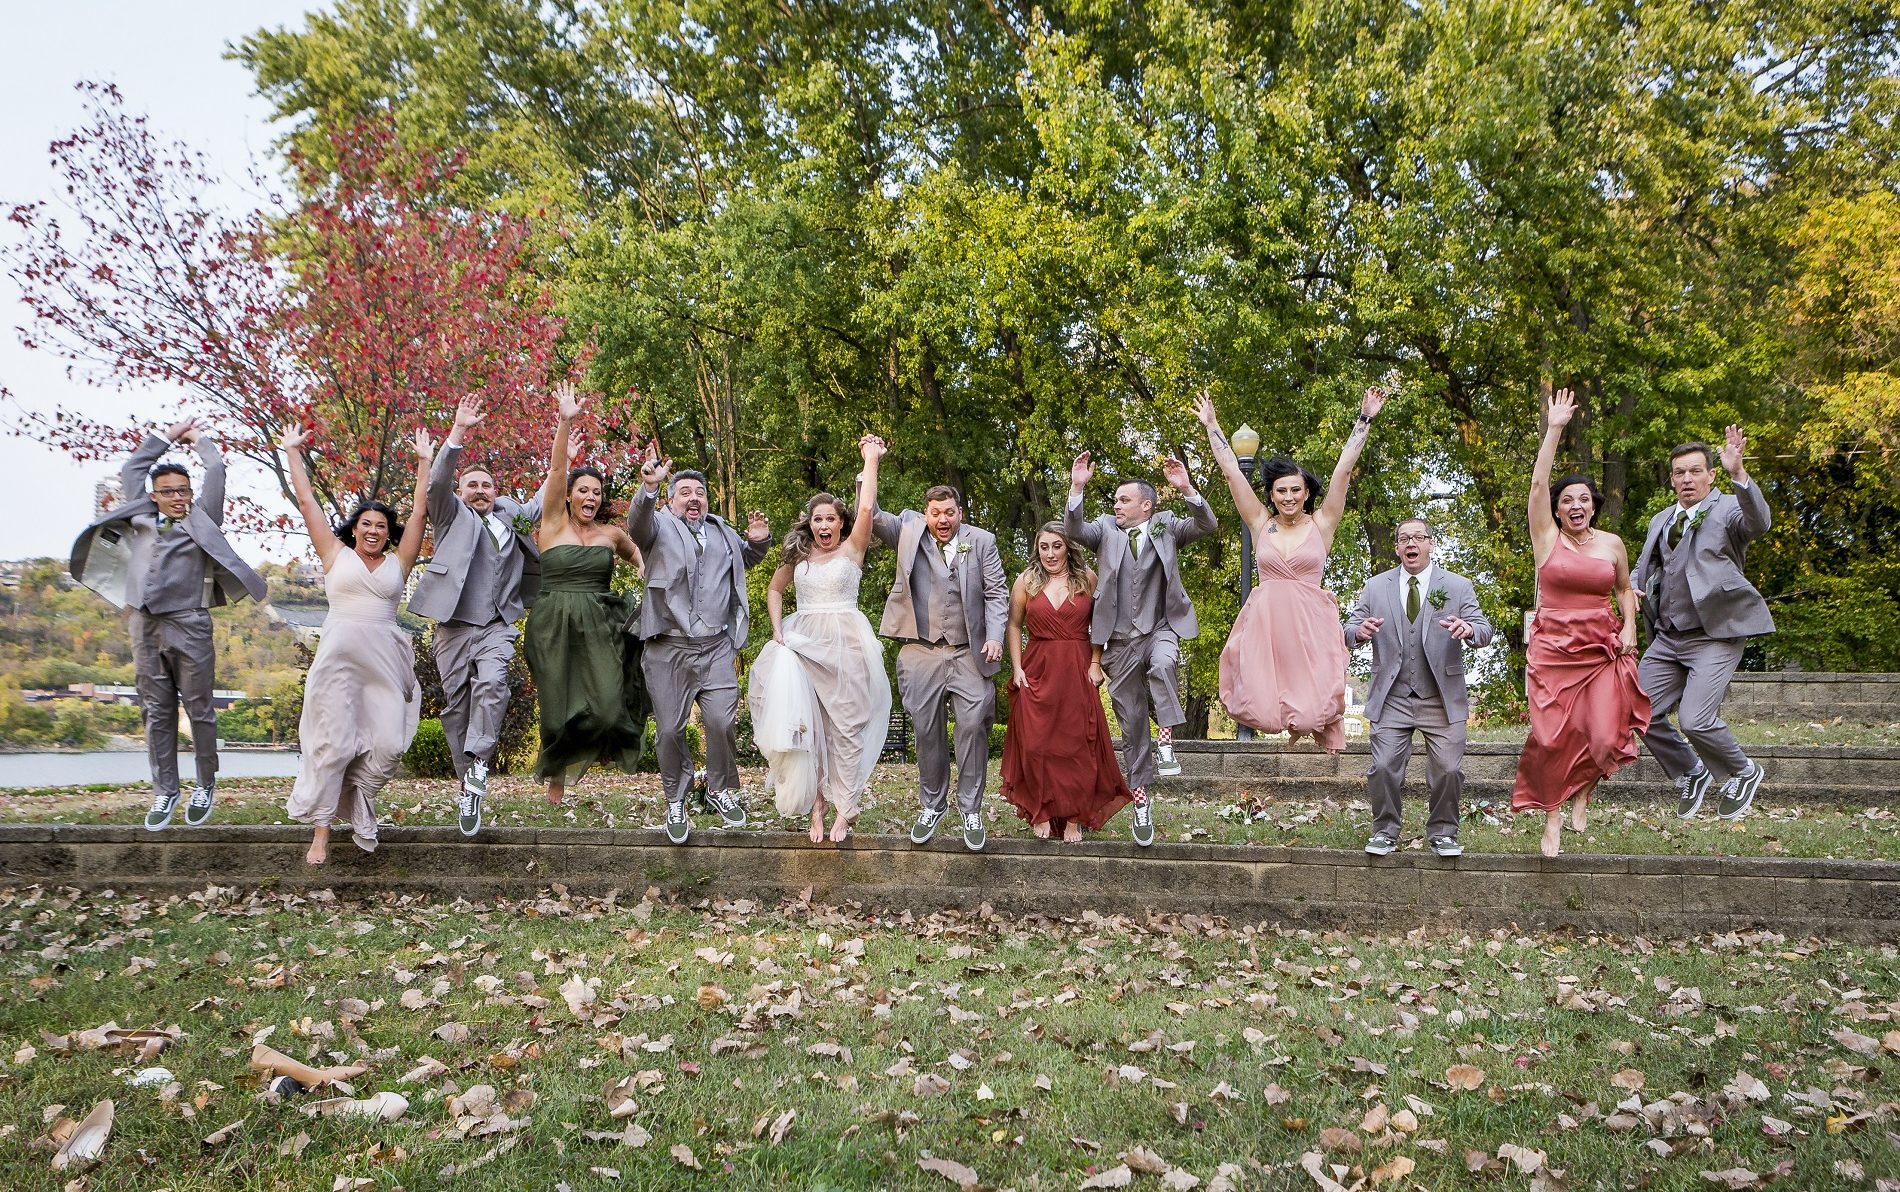 Group of ten men and women from a wedding jumping off a ledge